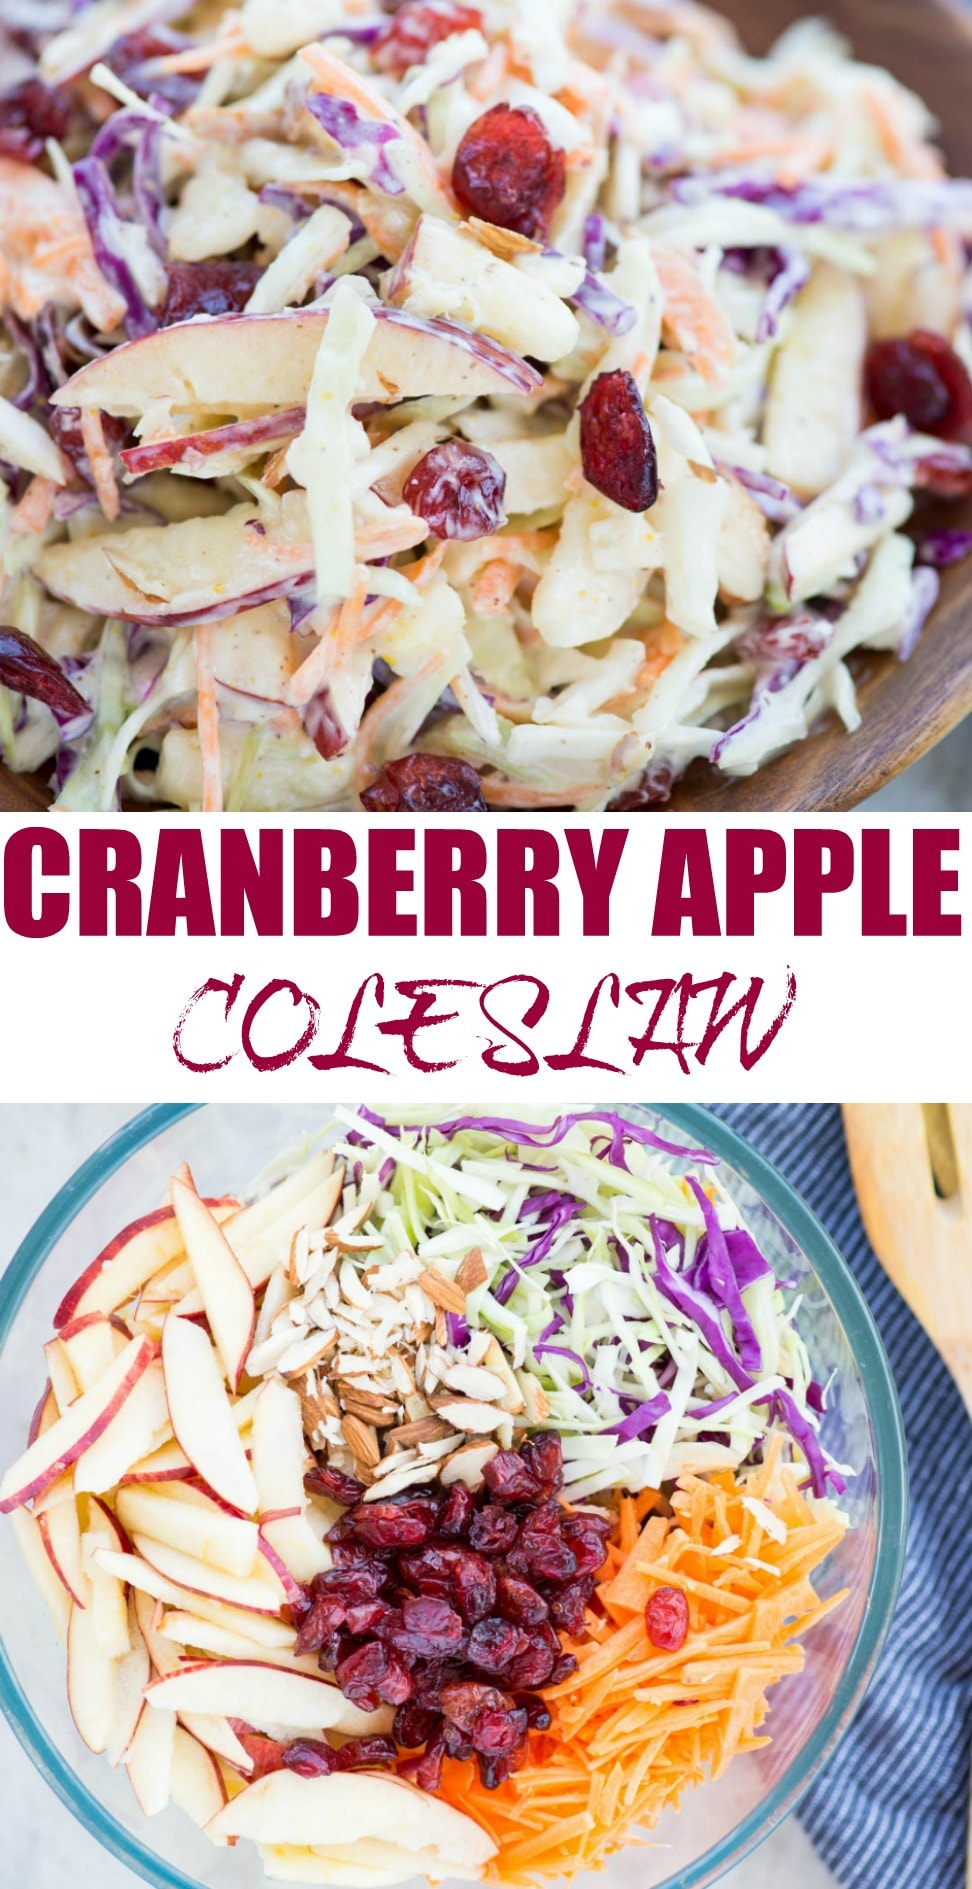 Crunchy apples, Cabbage, carrot, Tart Cranberries in a creamy dressing, this Apple Coleslaw or Apple Slaw is healthy and easy to make. A perfect side dish to serve and can be made in just 10 minutes.